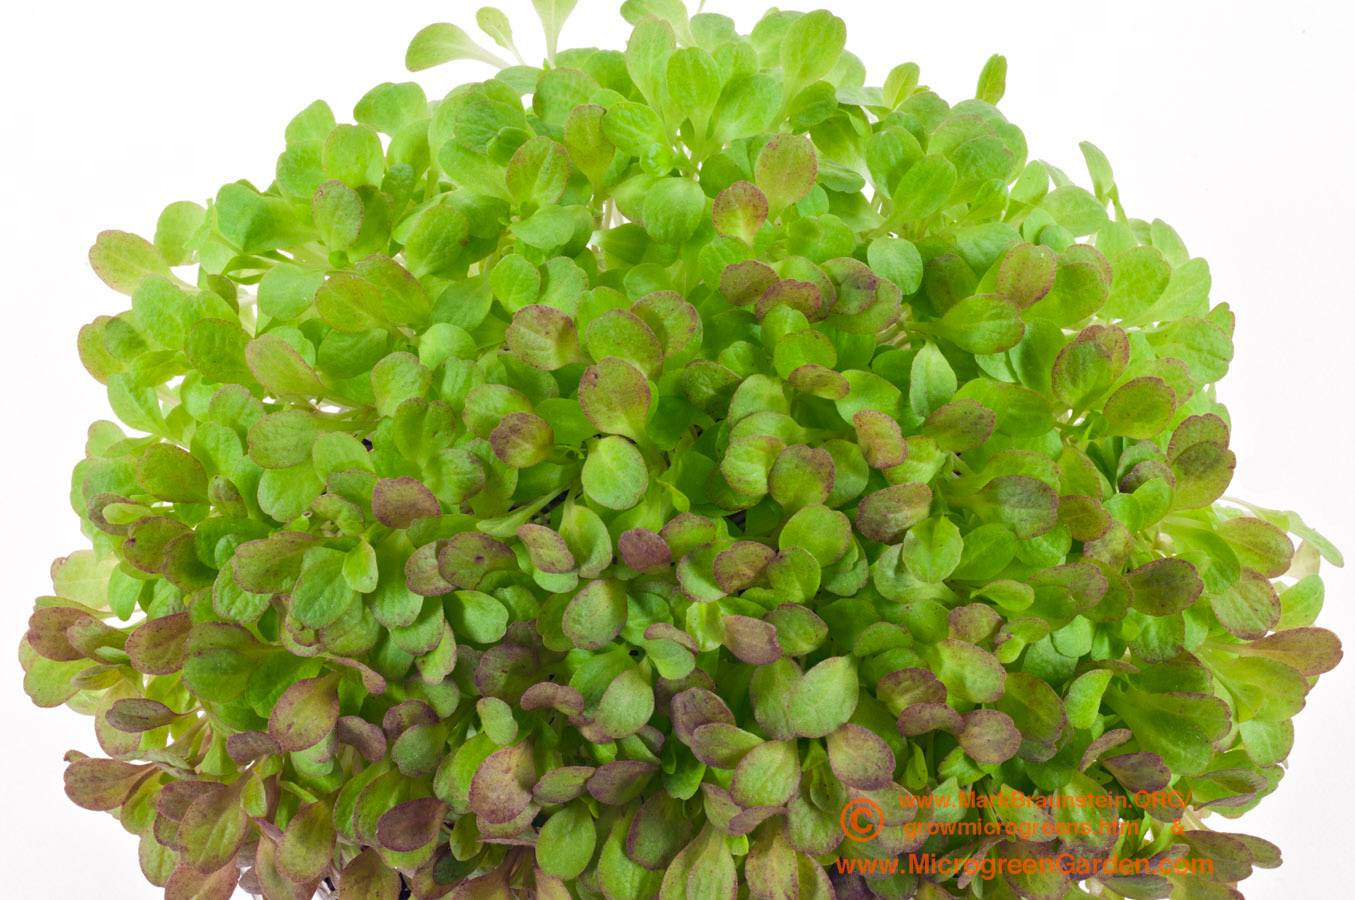 LETTUCE microgreens, Red Romaine, near true leaf stage; 18 days since sown